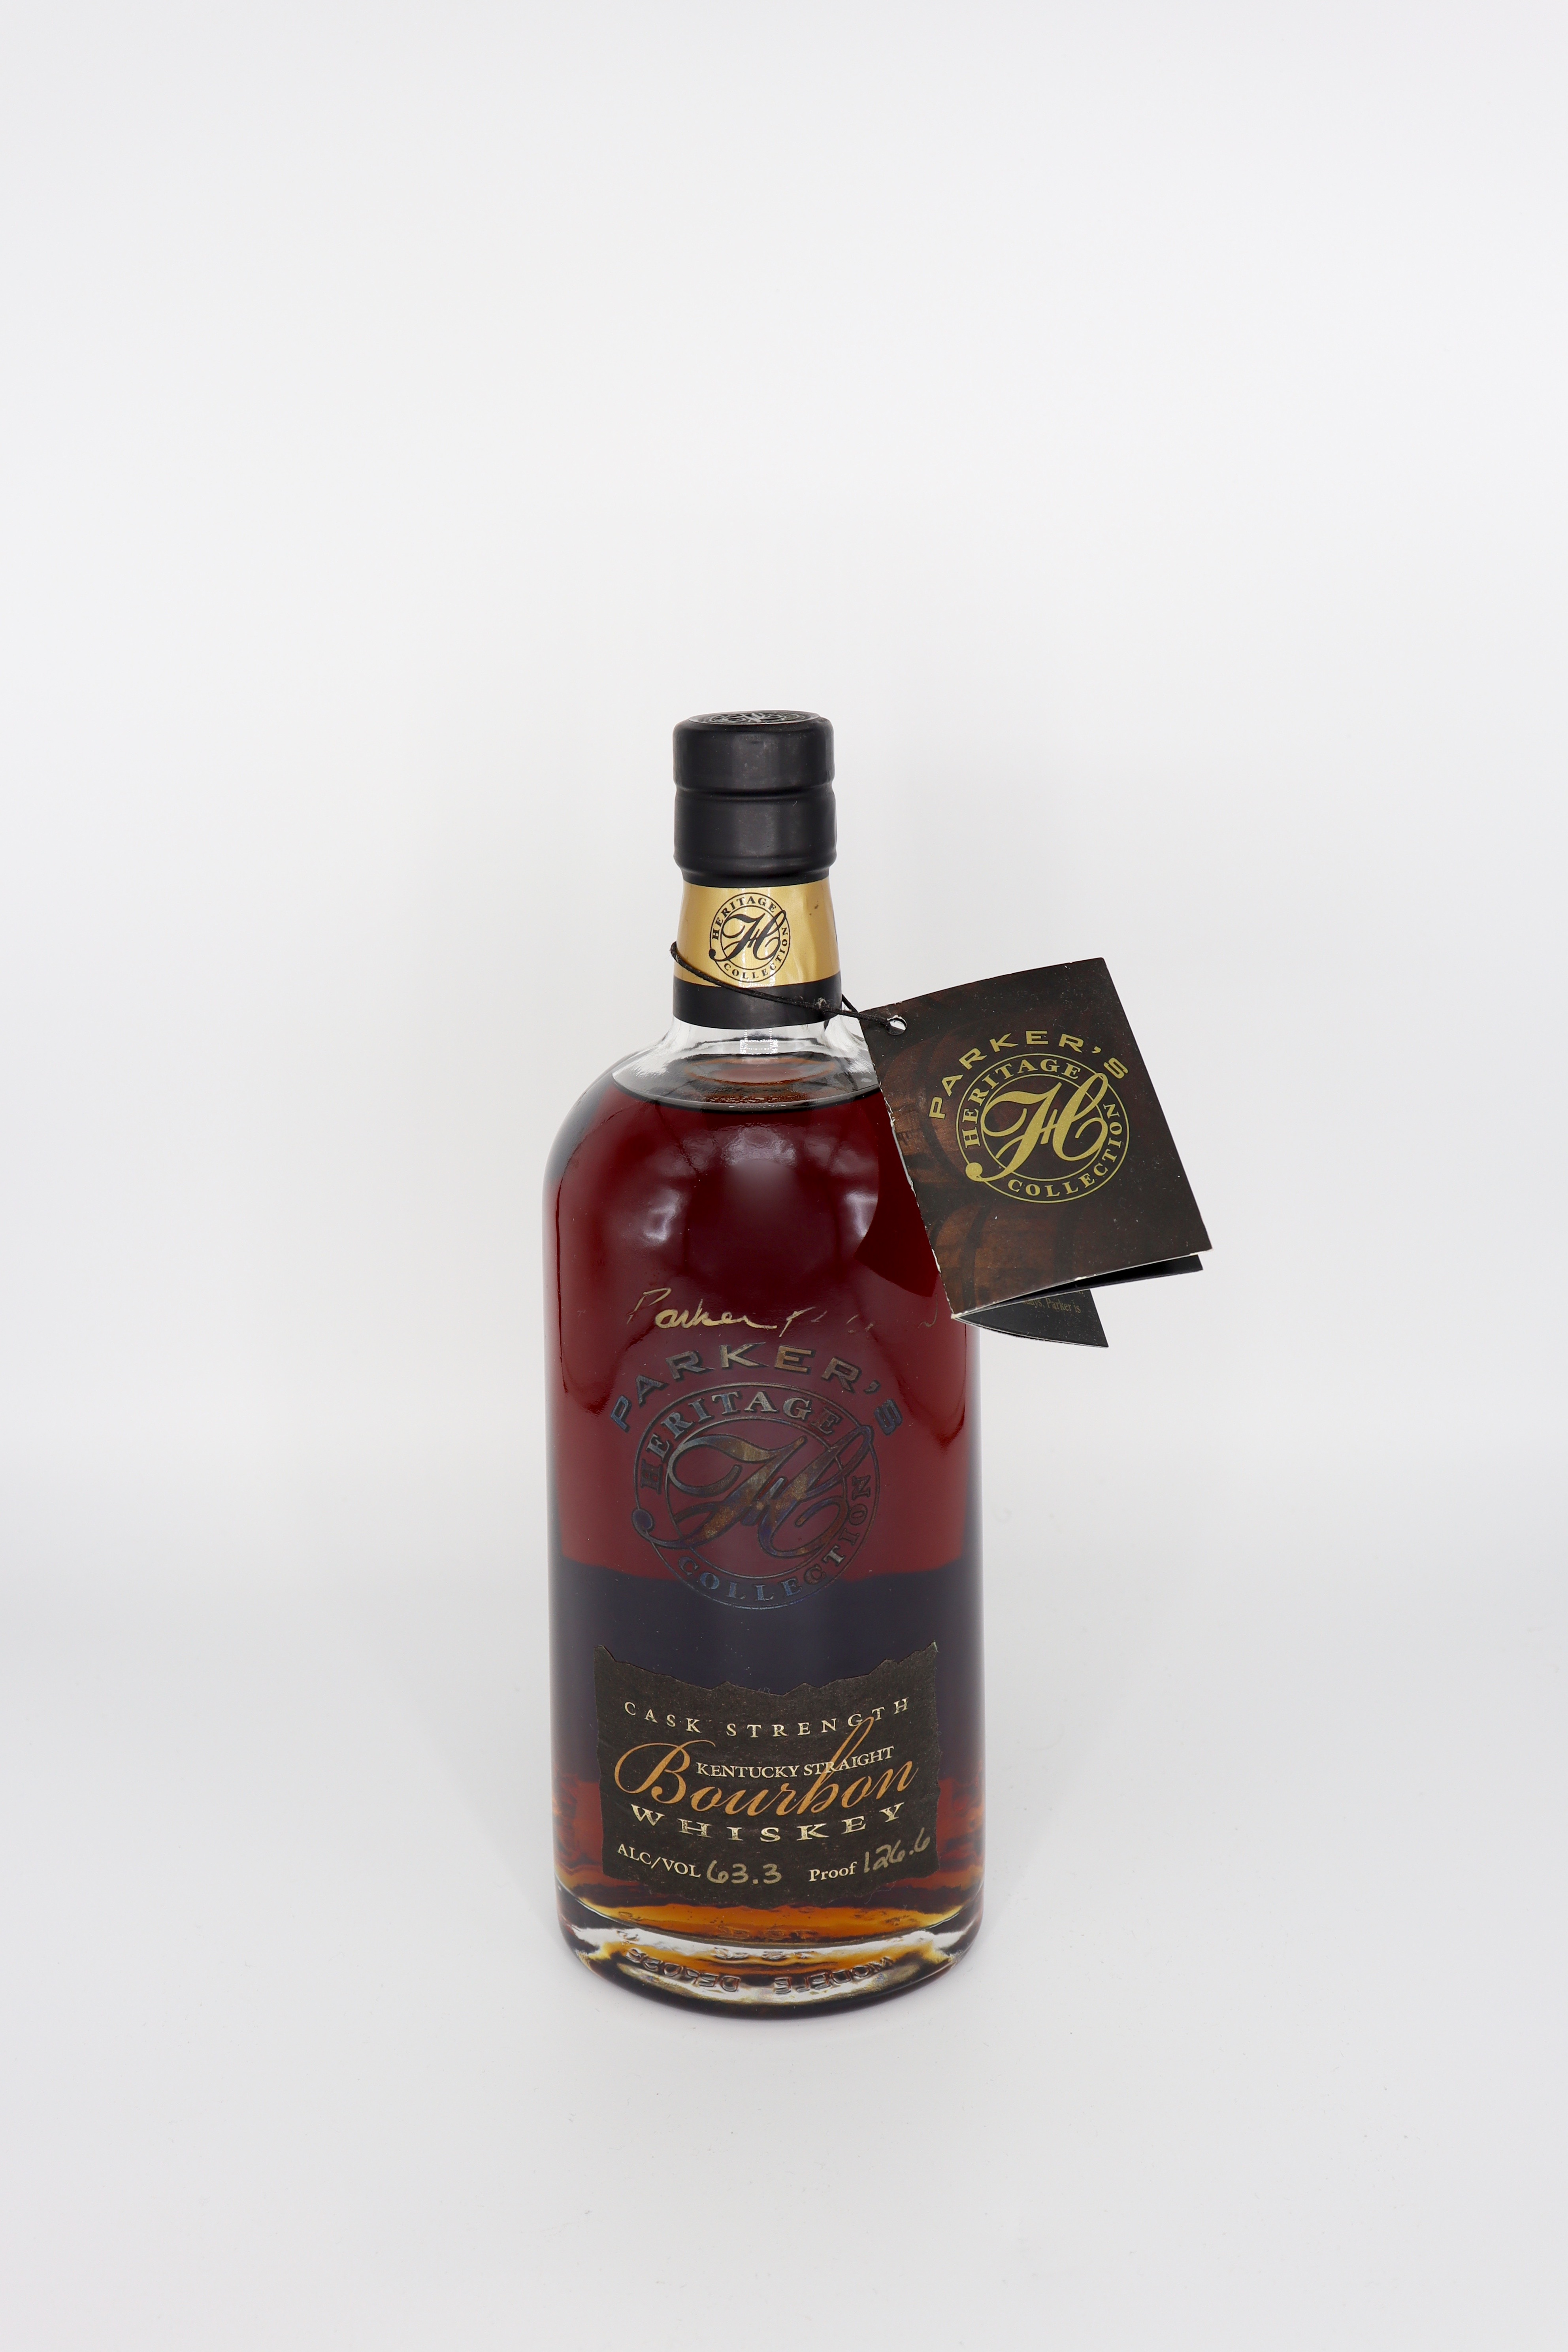 Parker's Heritage Collection Kentucky Straight Bourbon 1st Edition Cask Strength 126.6 Signed proof